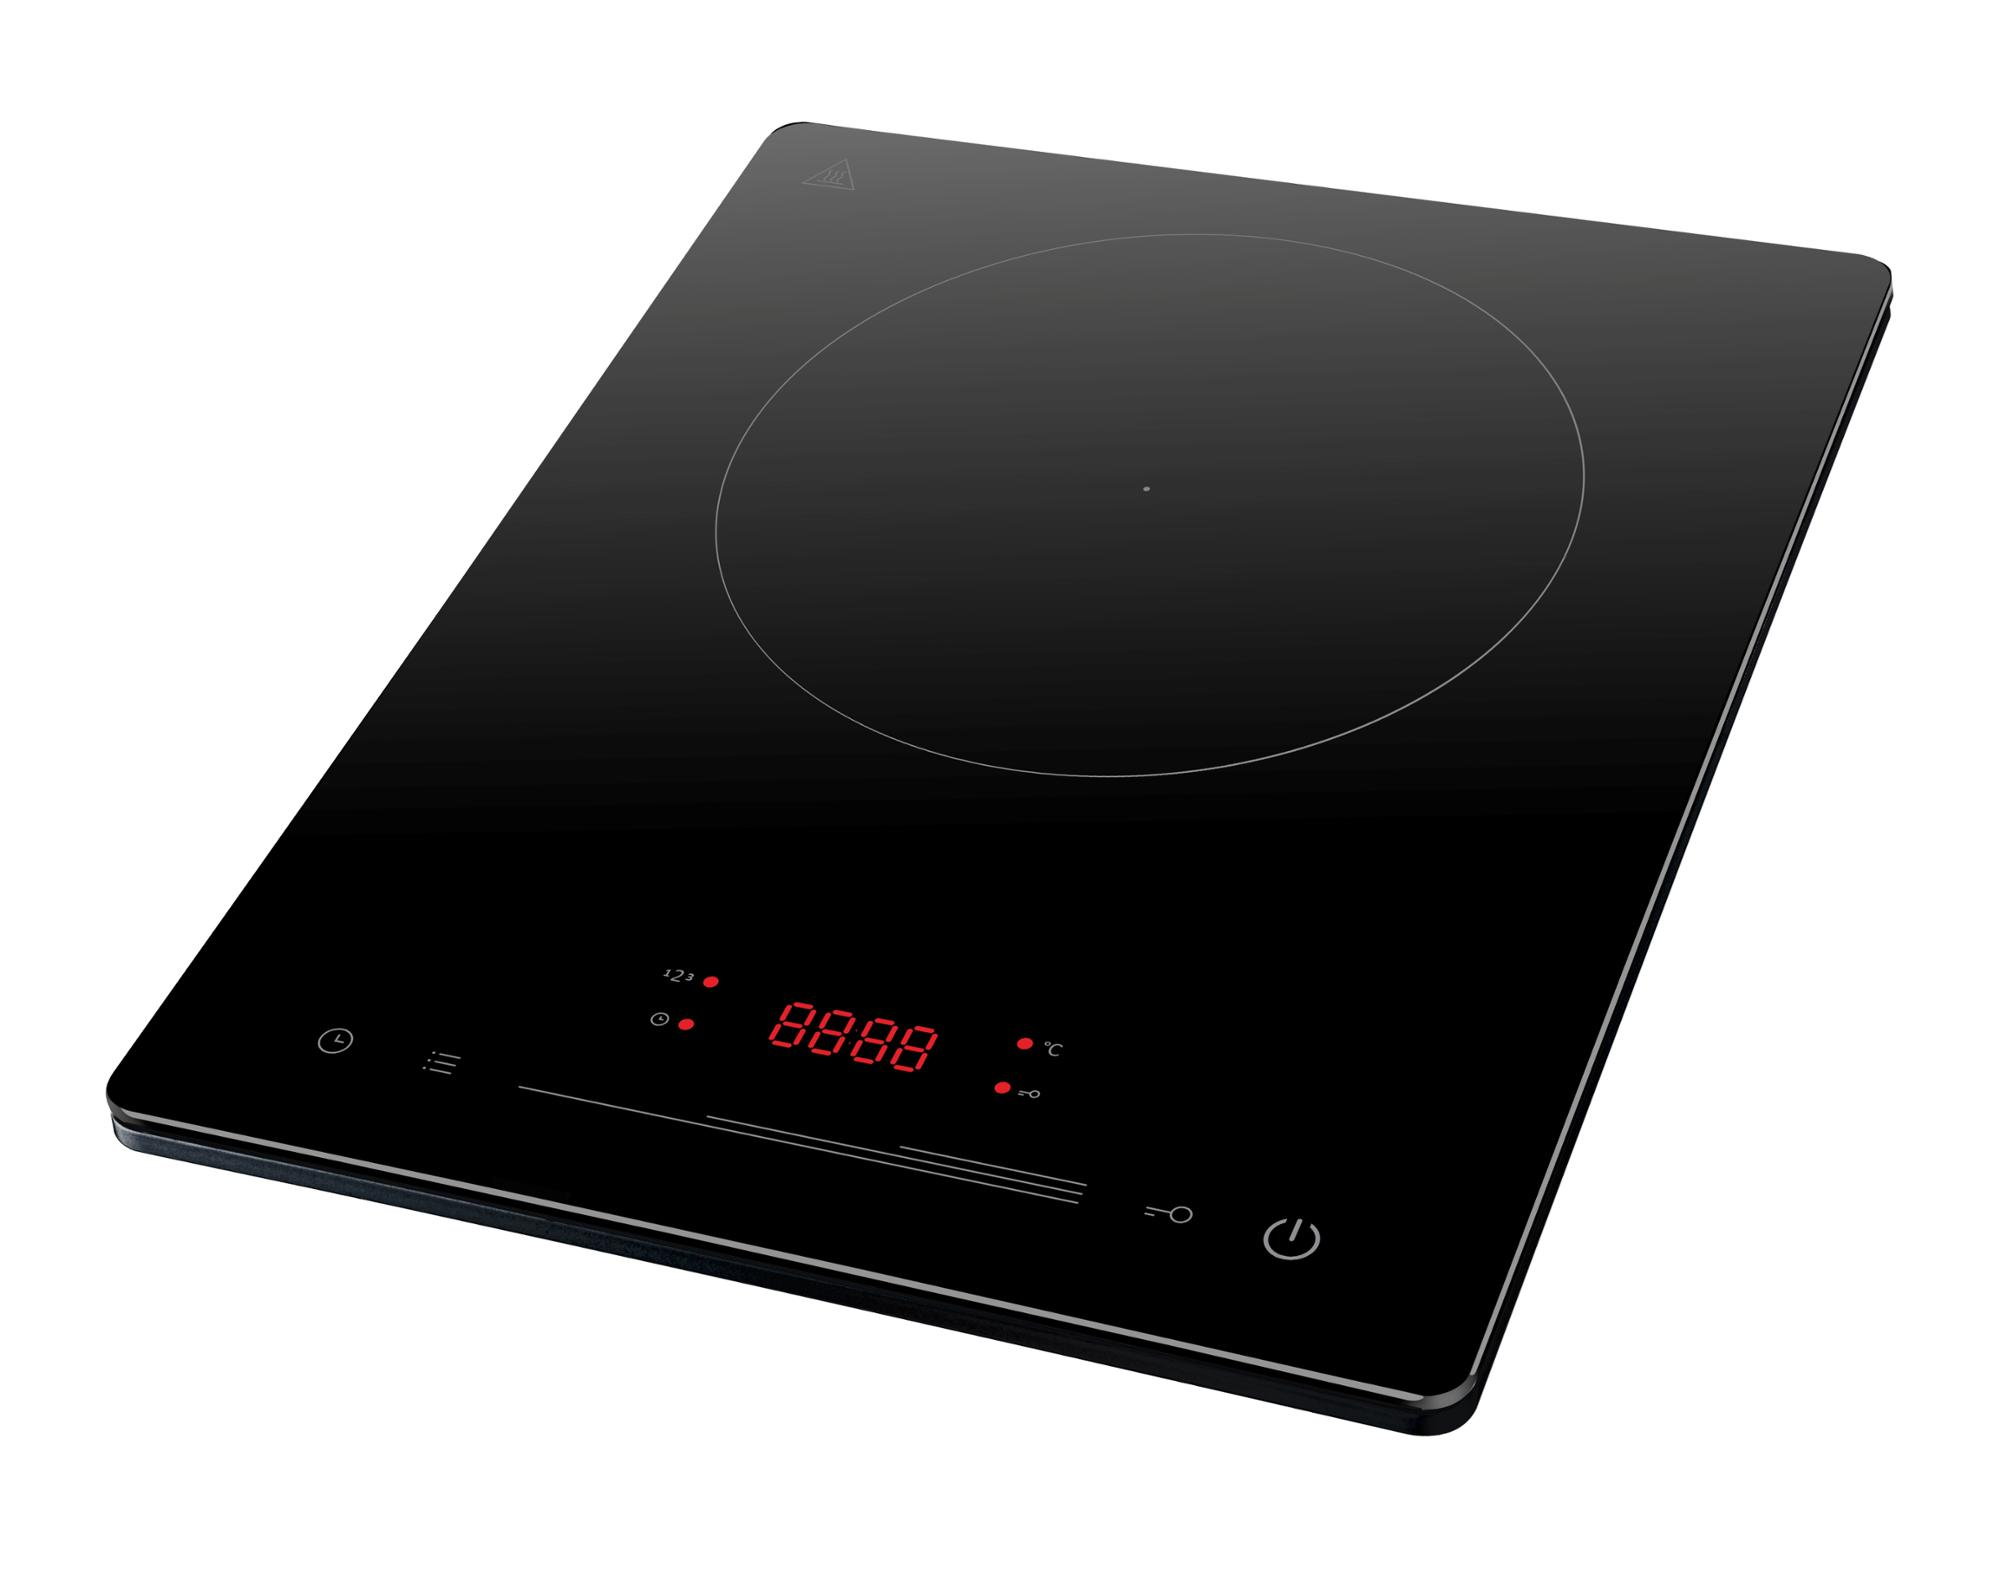 Ultra Slim 220v Portable Induction Cooker - Buy Induction Cooker,Portable  Induction Cooker,Slim Induction Cooker Product on Alibaba com